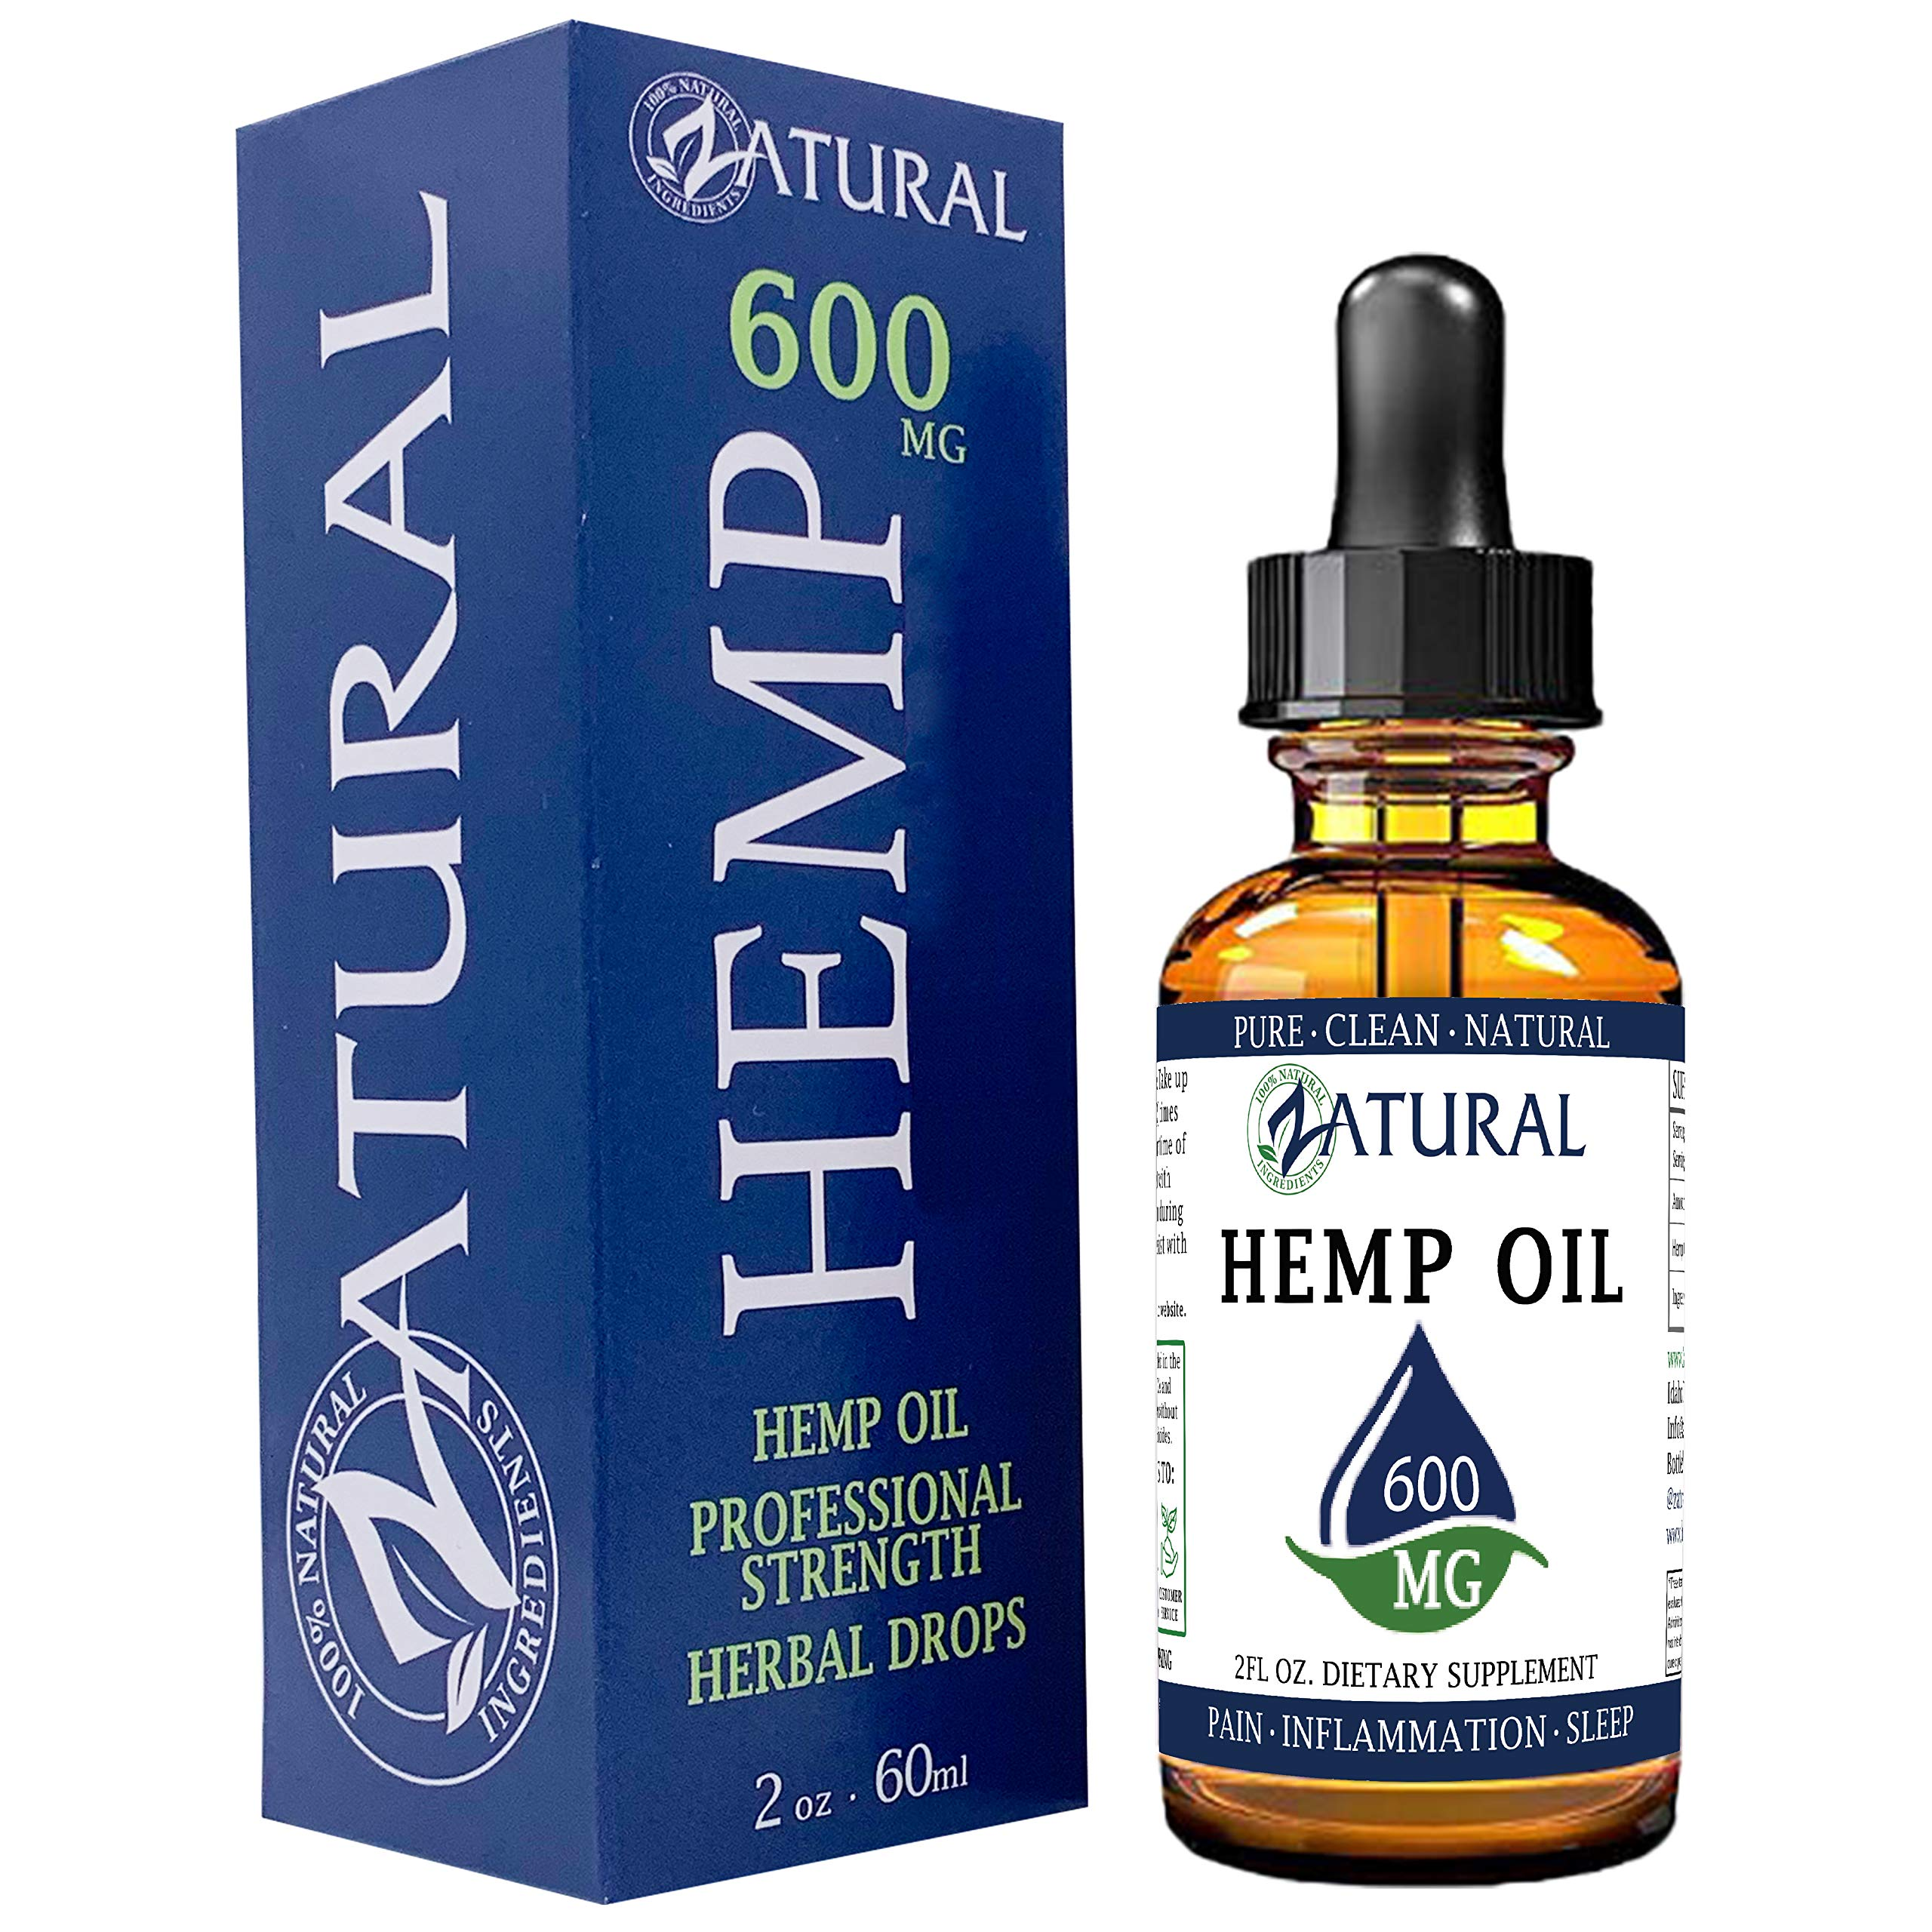 Hemp Oil Anti-Inflammatory_Pain Relief_100% Pure_Cold Pressed_High Vegan Omegas 3 & 6_No Fillers or Additives, Therapeutic Grade (600mg) by Zatural